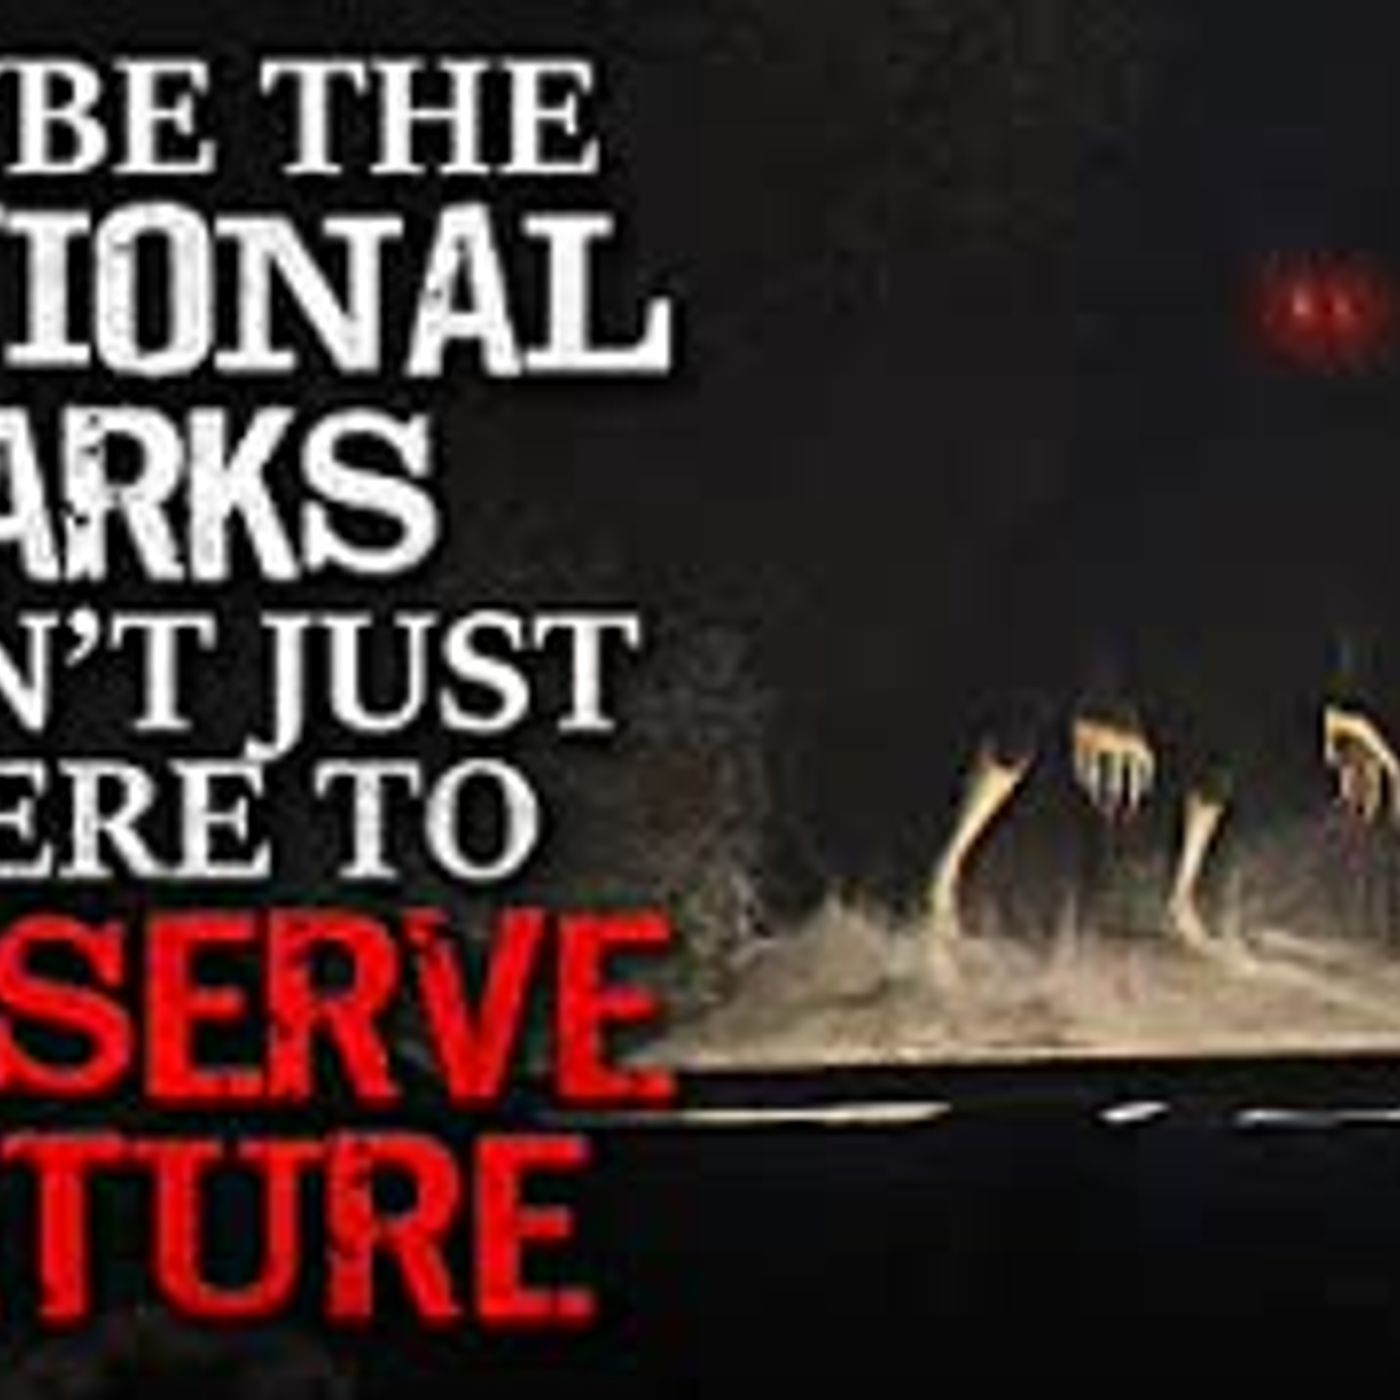 """Maybe the National Parks Aren't Just There to Preserve Nature"" Creepypasta"